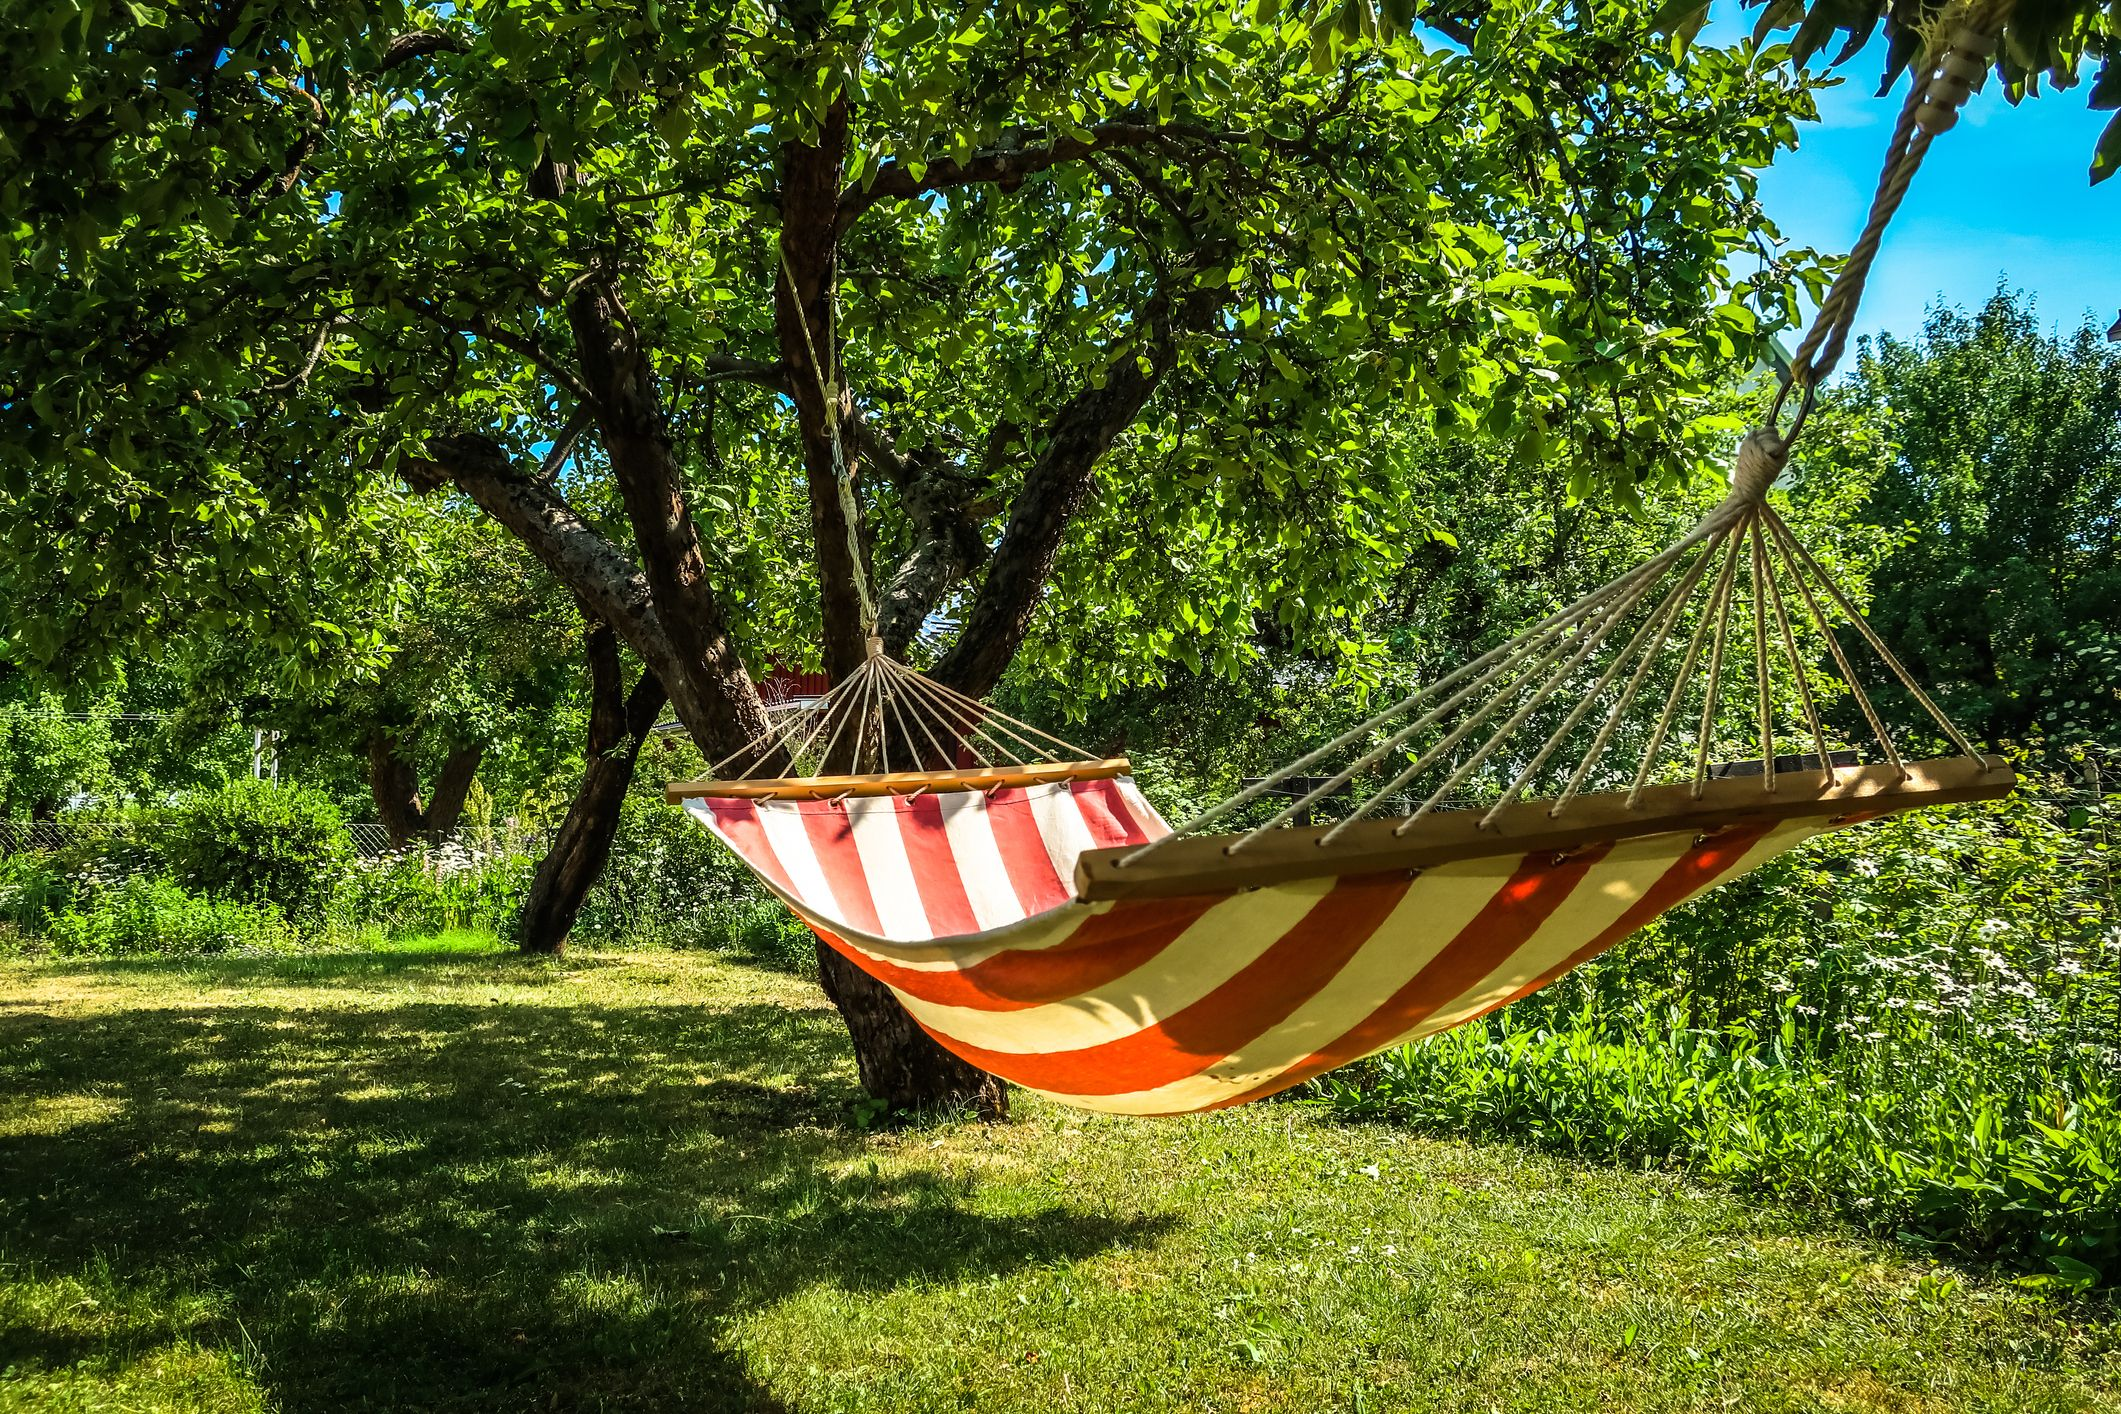 Here's How to Hang a Hammock in Your Backyard